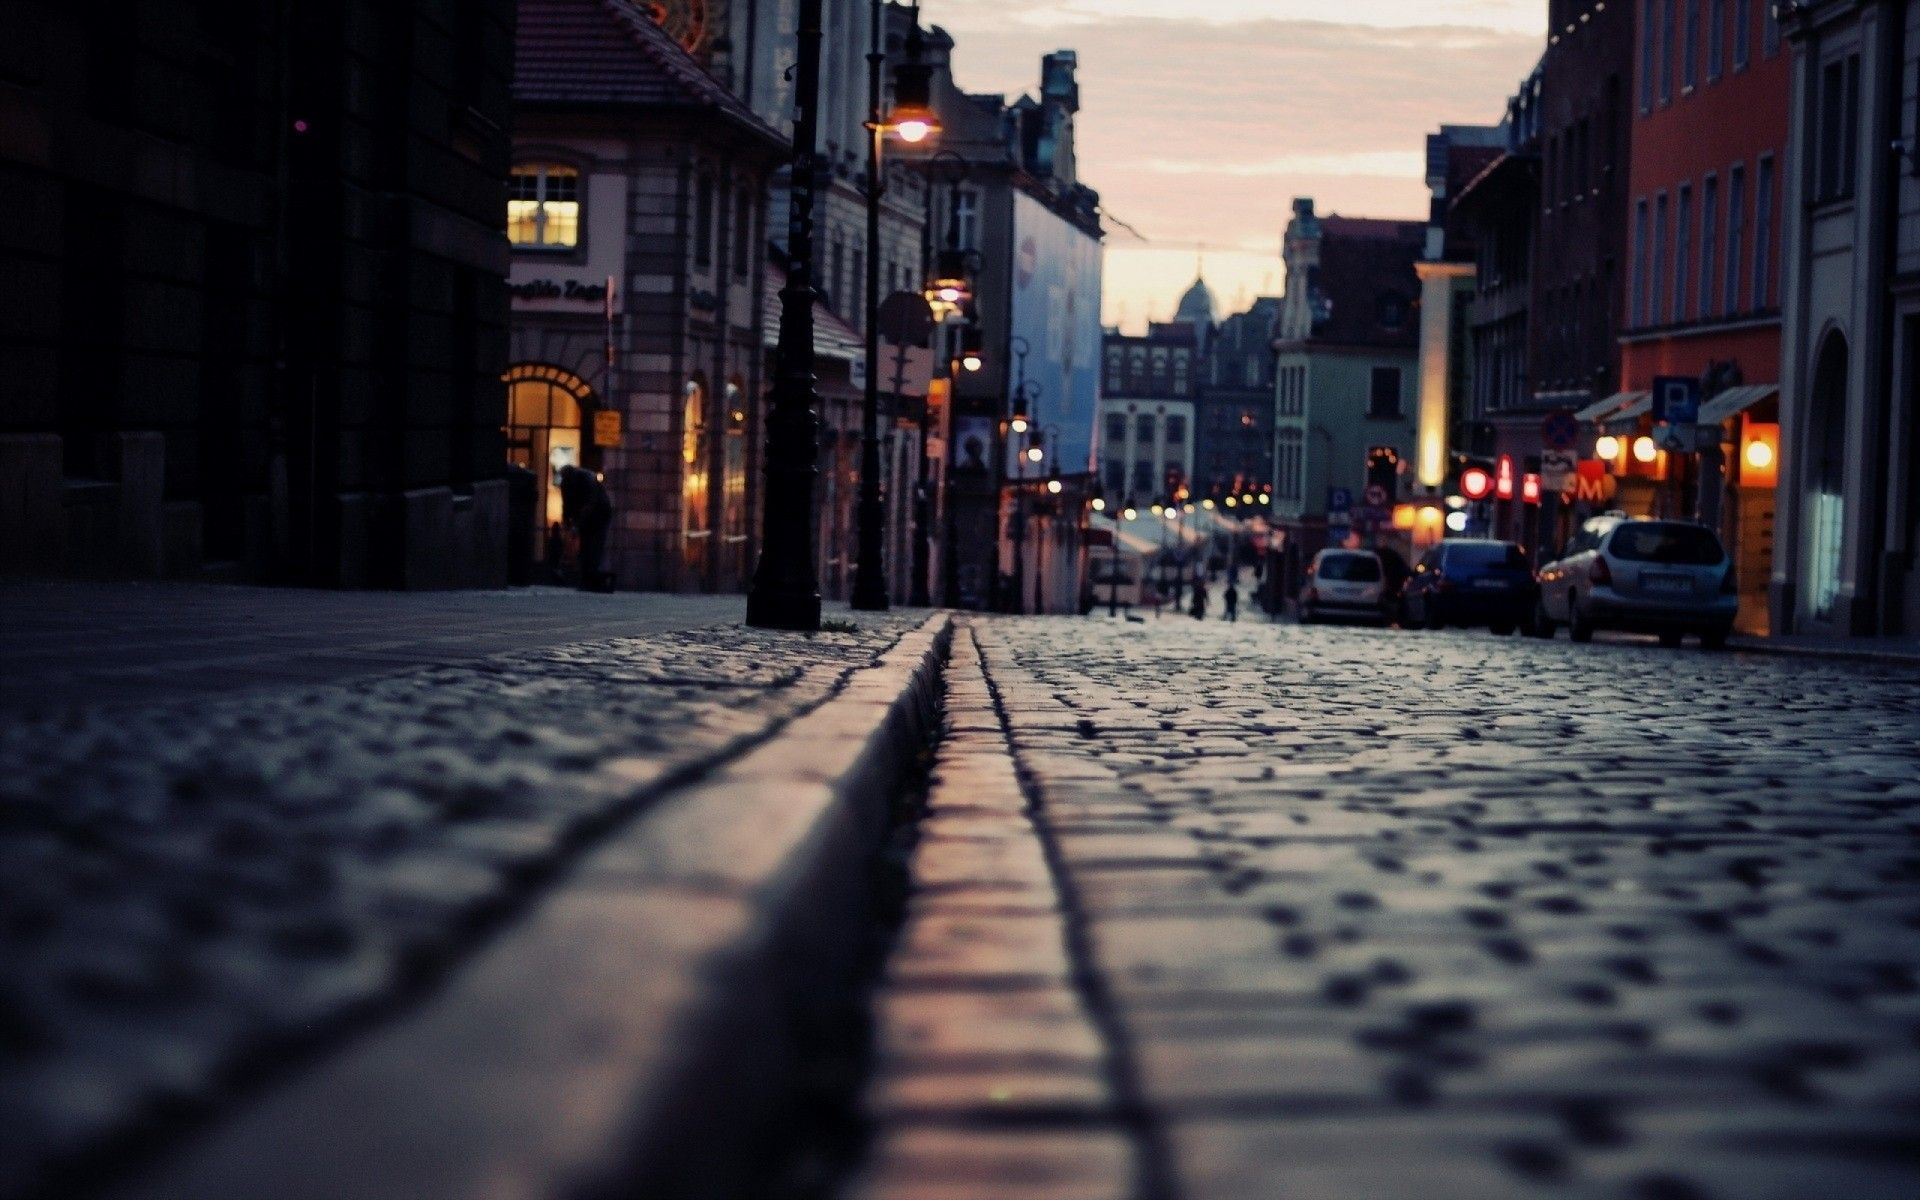 Small Alley Background for photography Night city Background 1920x1200